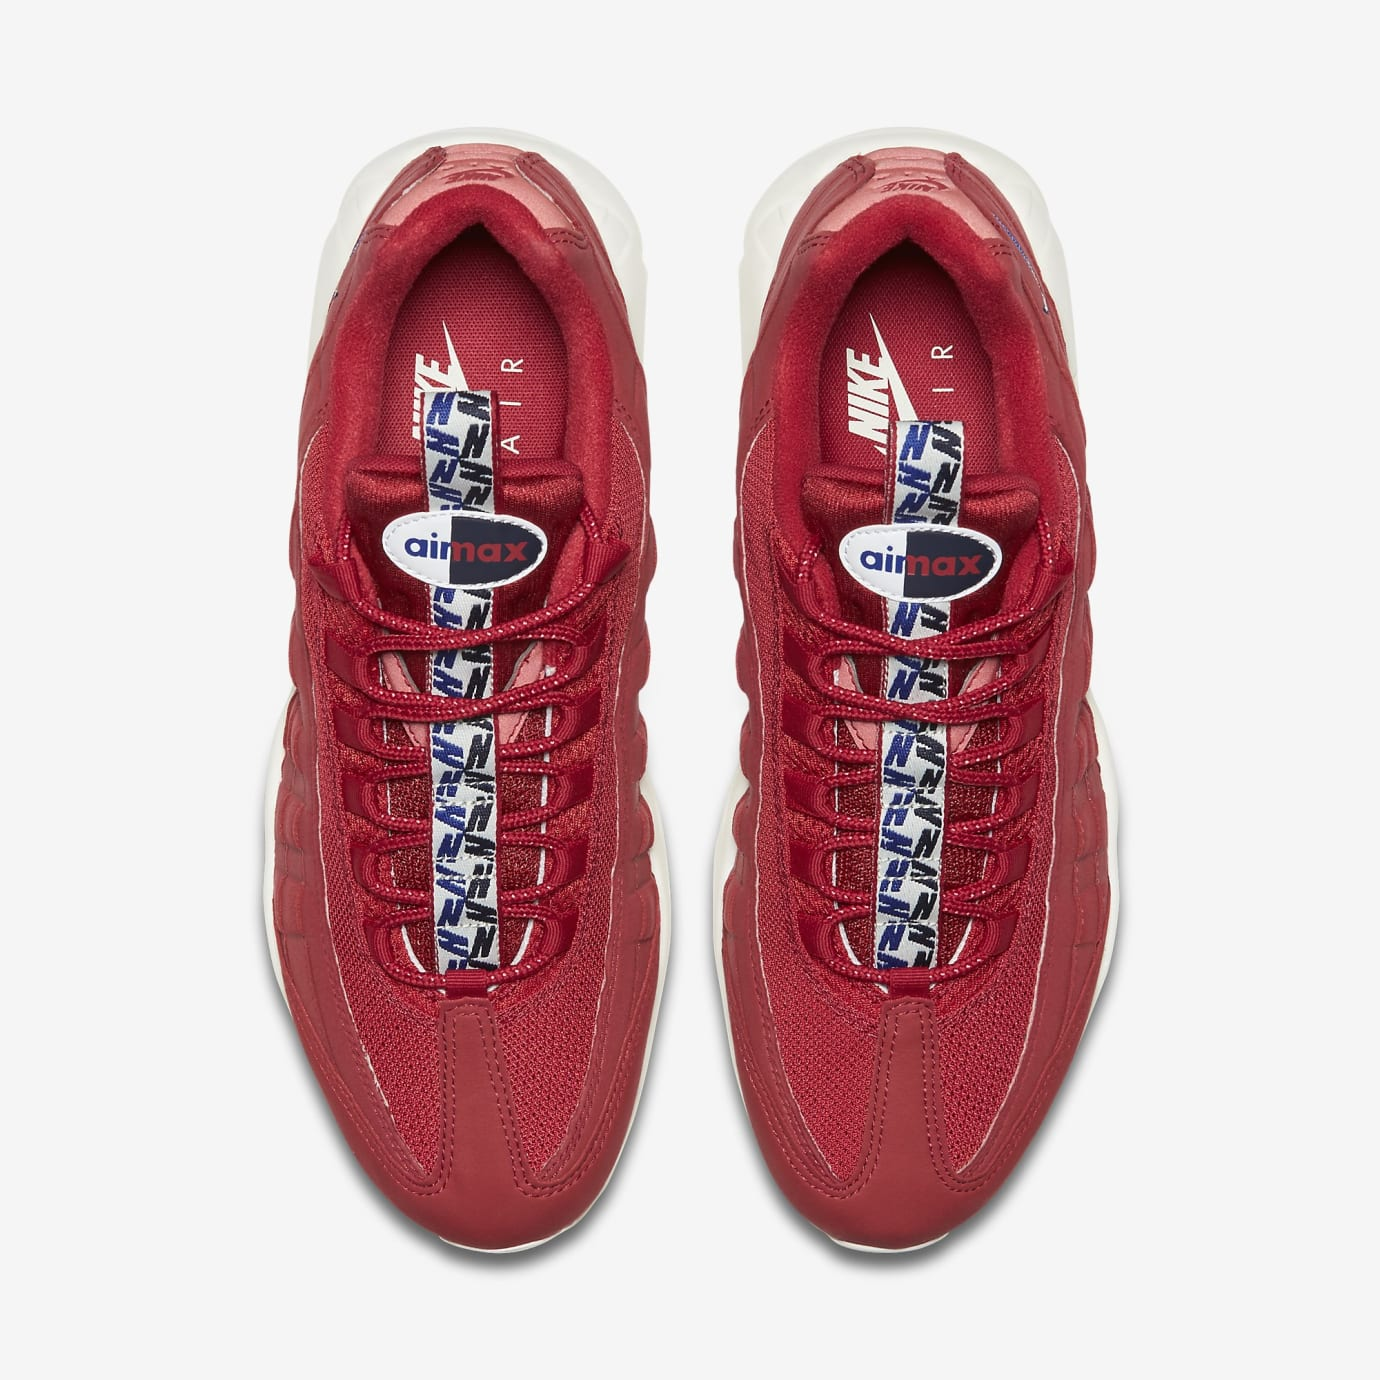 Available Now: Nike Air Max 95 Pull Tab Pack The Drop Date